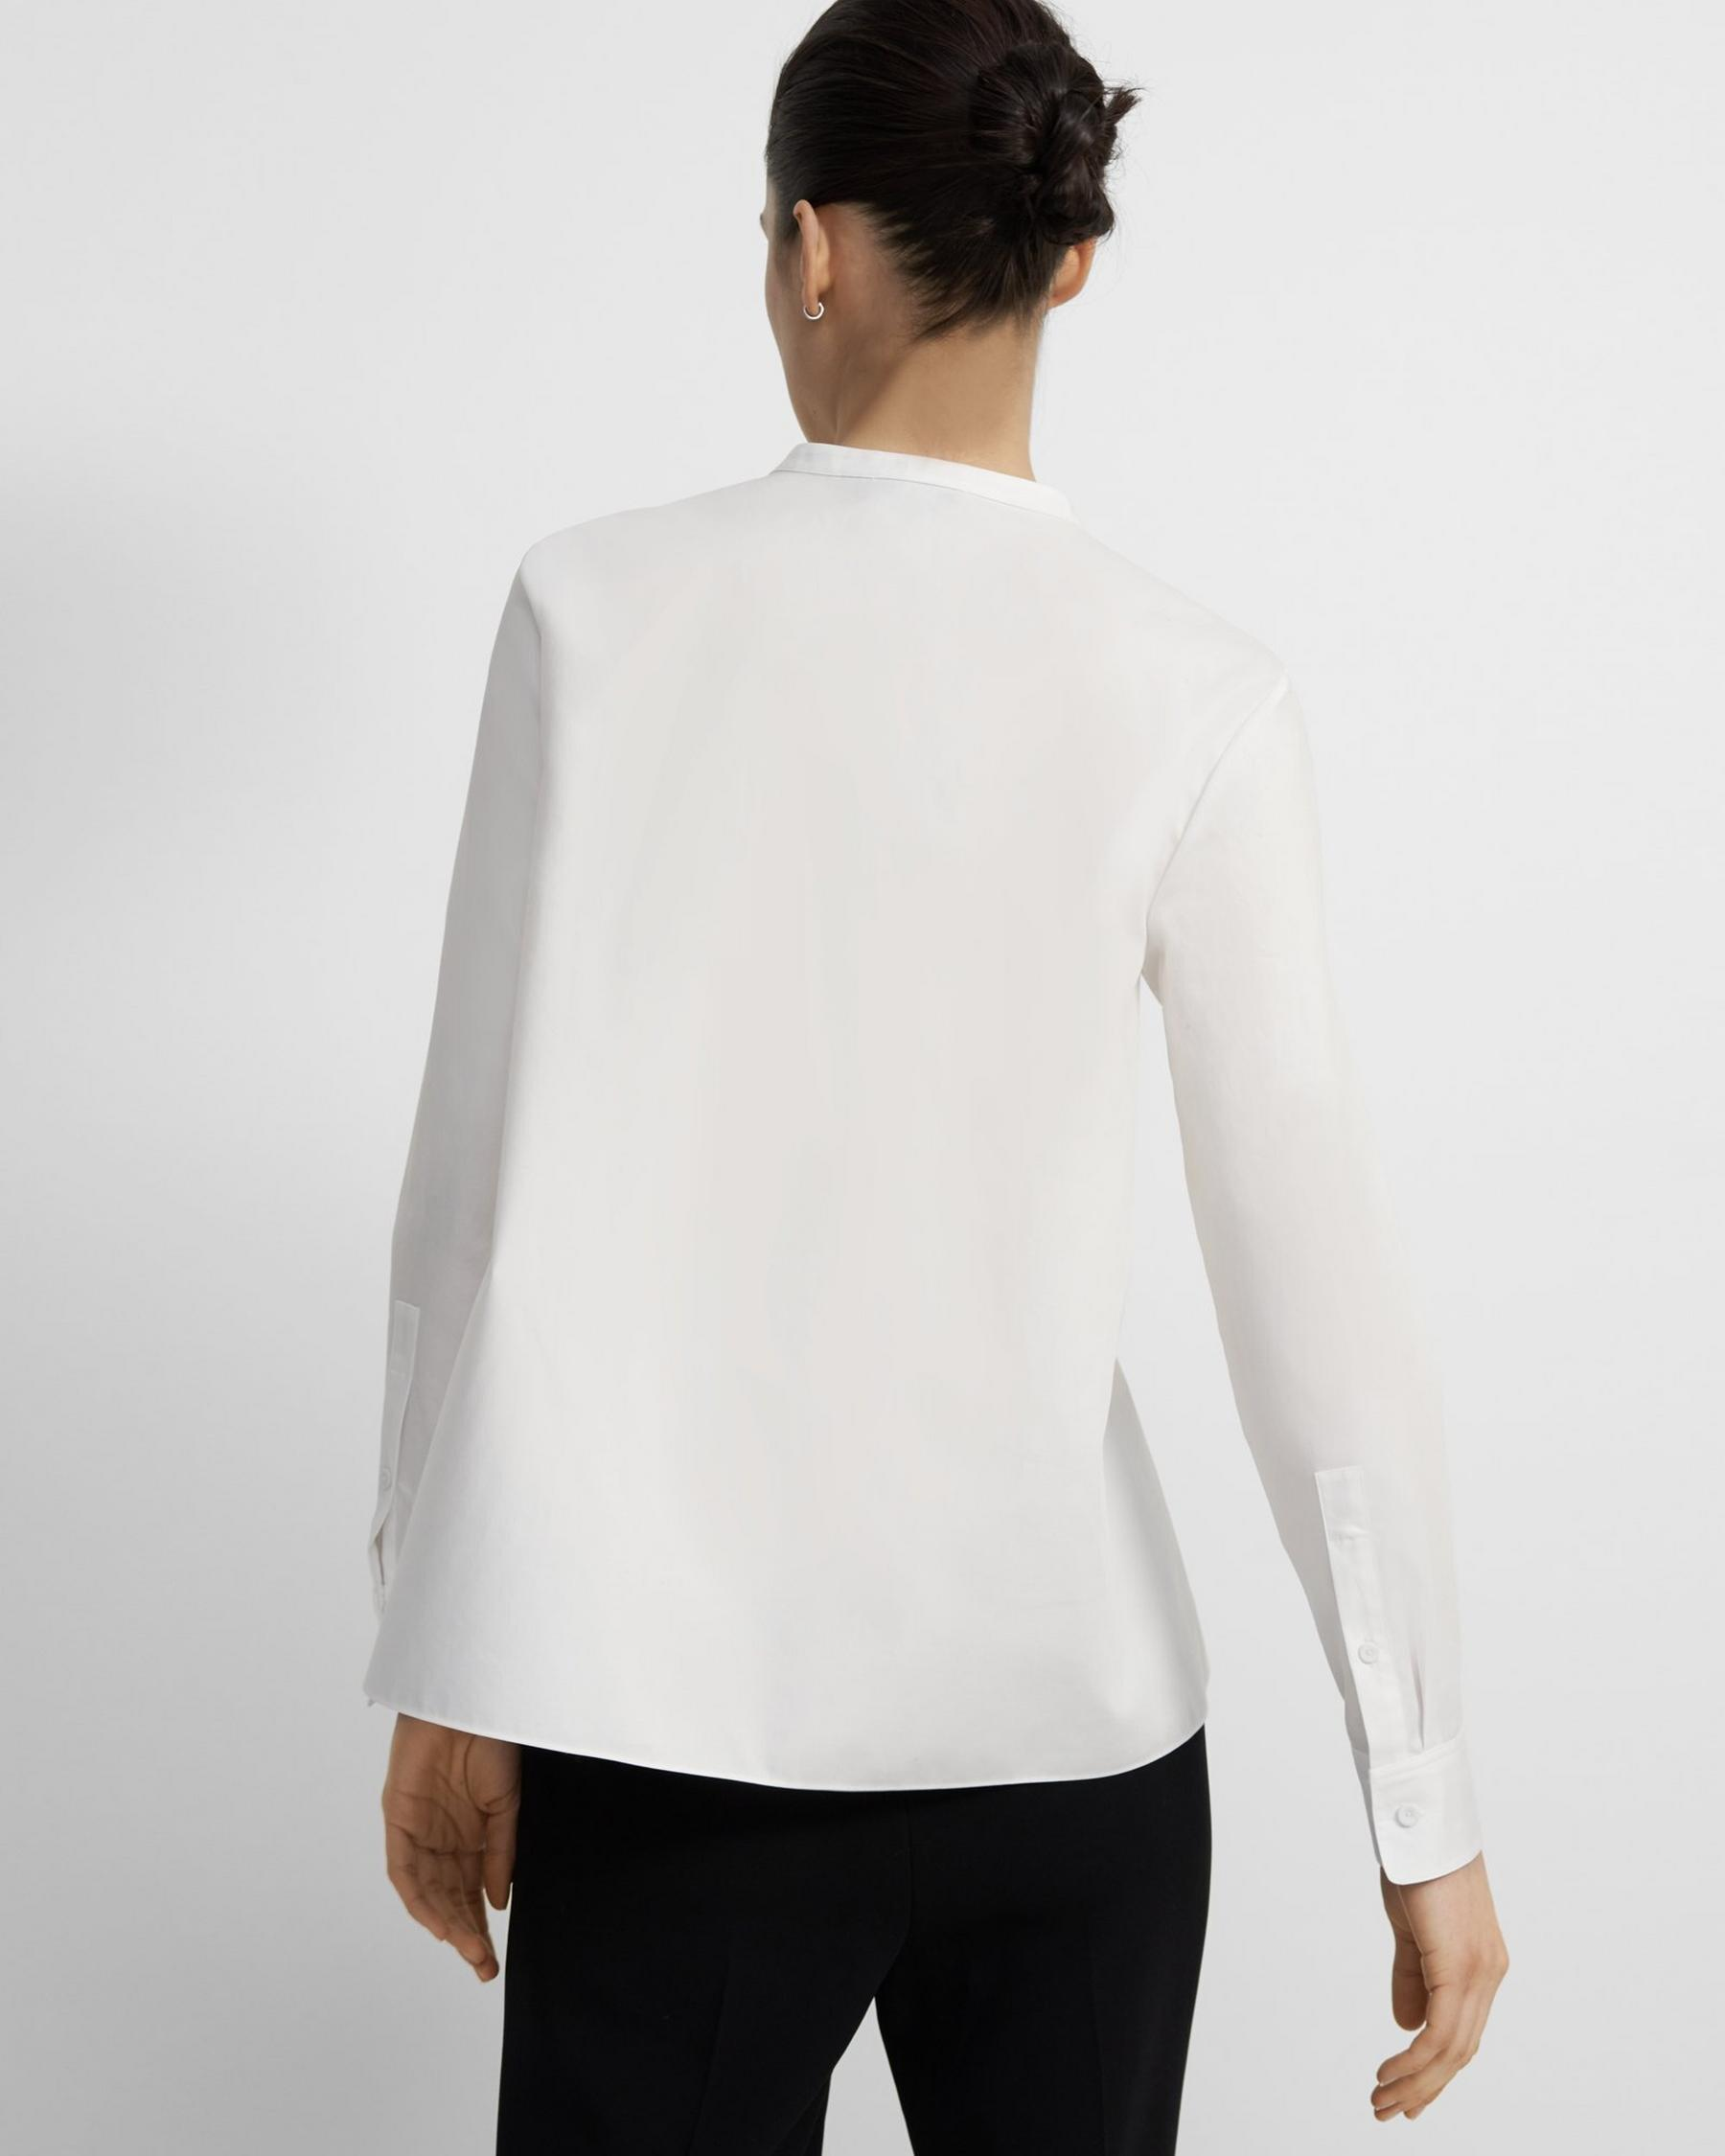 Cinched Shirt in Good Cotton 2